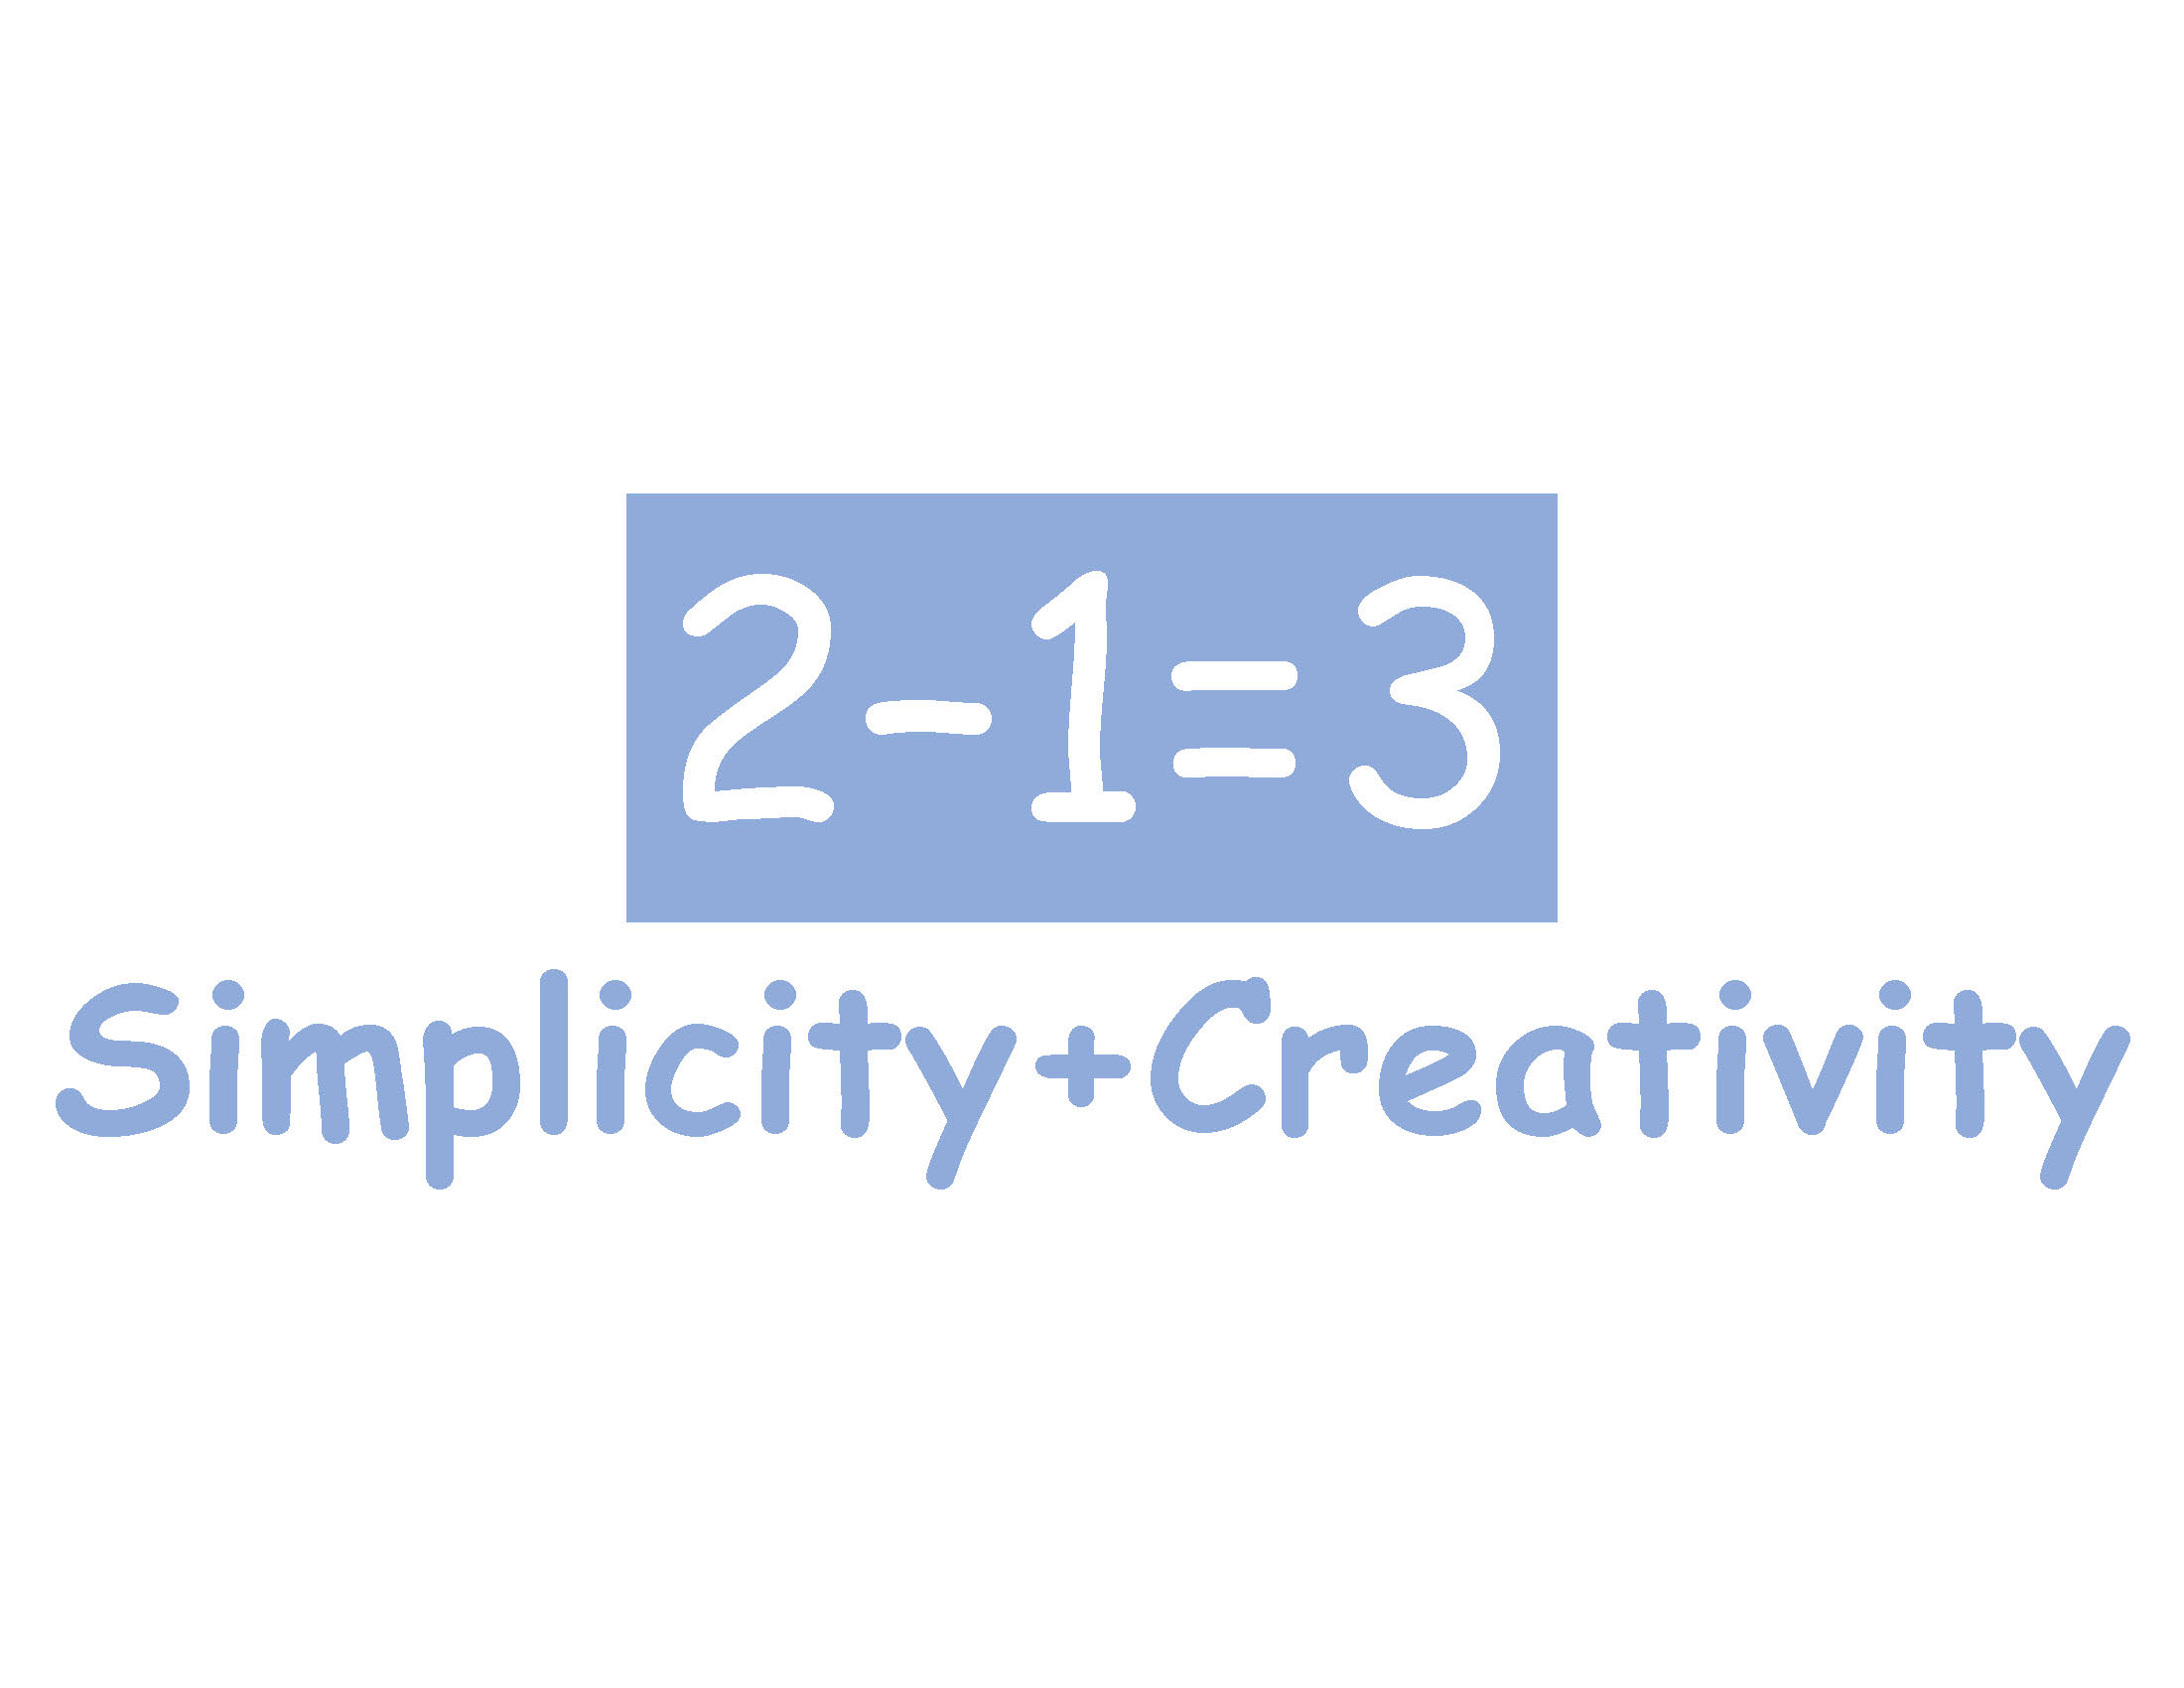 For many it is hard to accept that subtracting details can result in greater results, but that's the reality of how simplicity teams with creativity to produce easy-to-grasp, compelling storytelling. It even works in the field of public affairs.